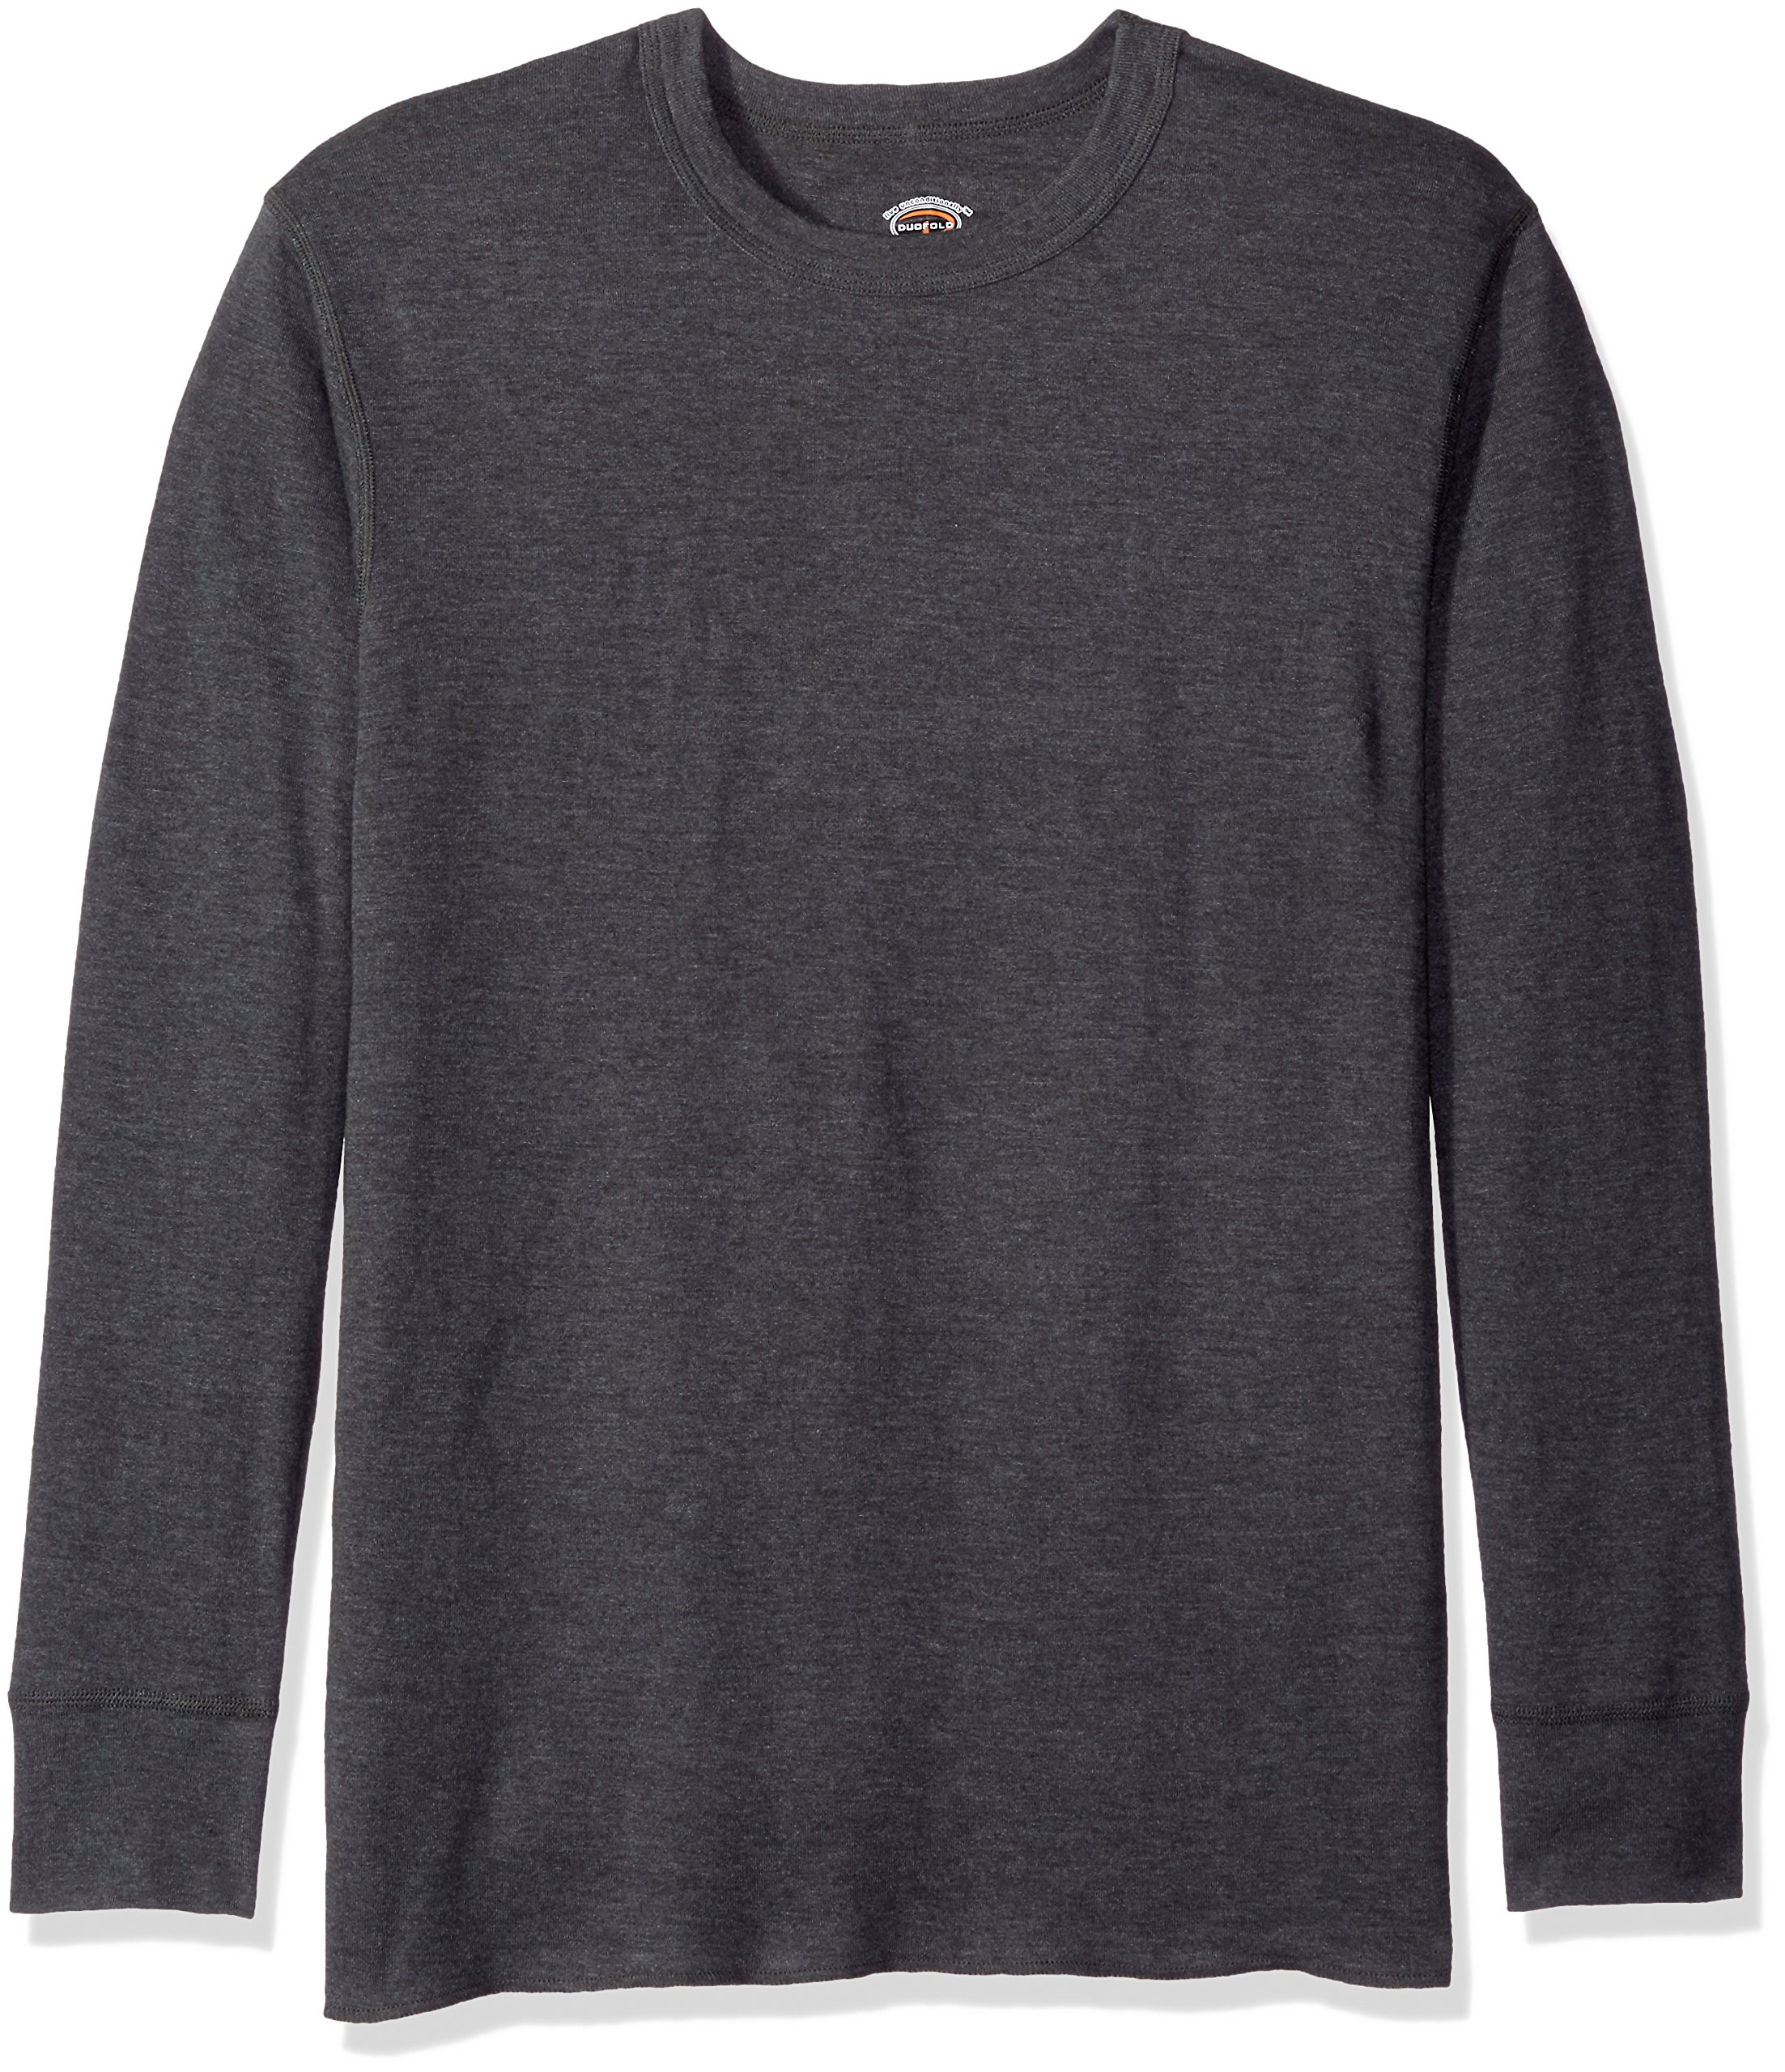 Duofold Men's Mid Weight Wicking Thermal Shirt, Granite Heather, L